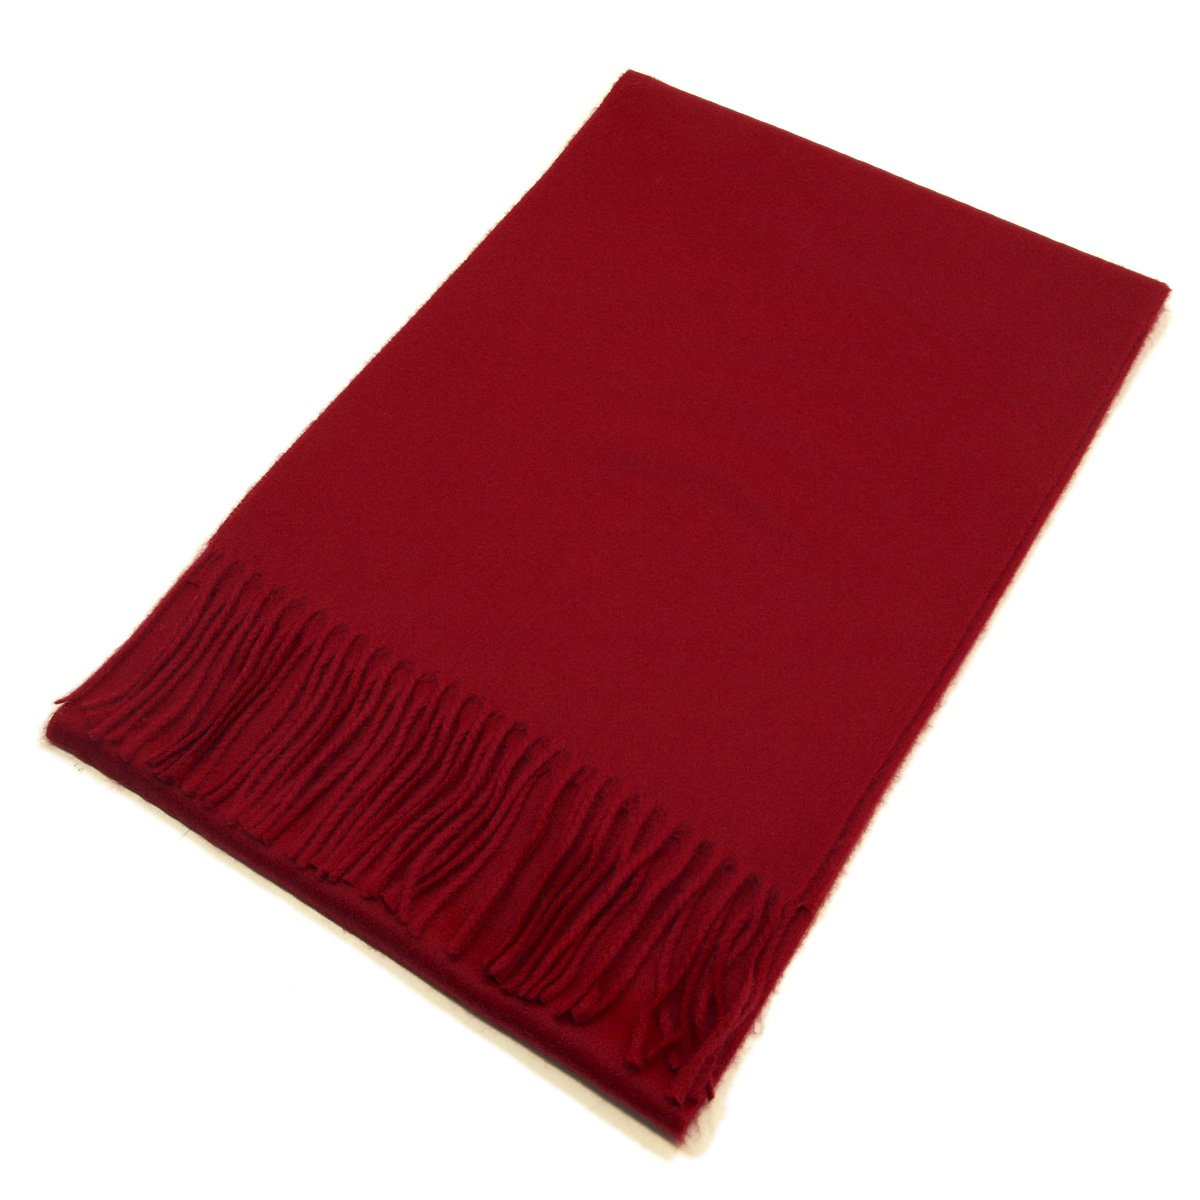 Classic Premium Unisex Plain Solid Color Winter Fringe Scarf - Different Colors Available, Light Ivory SCDK301-LightIvory